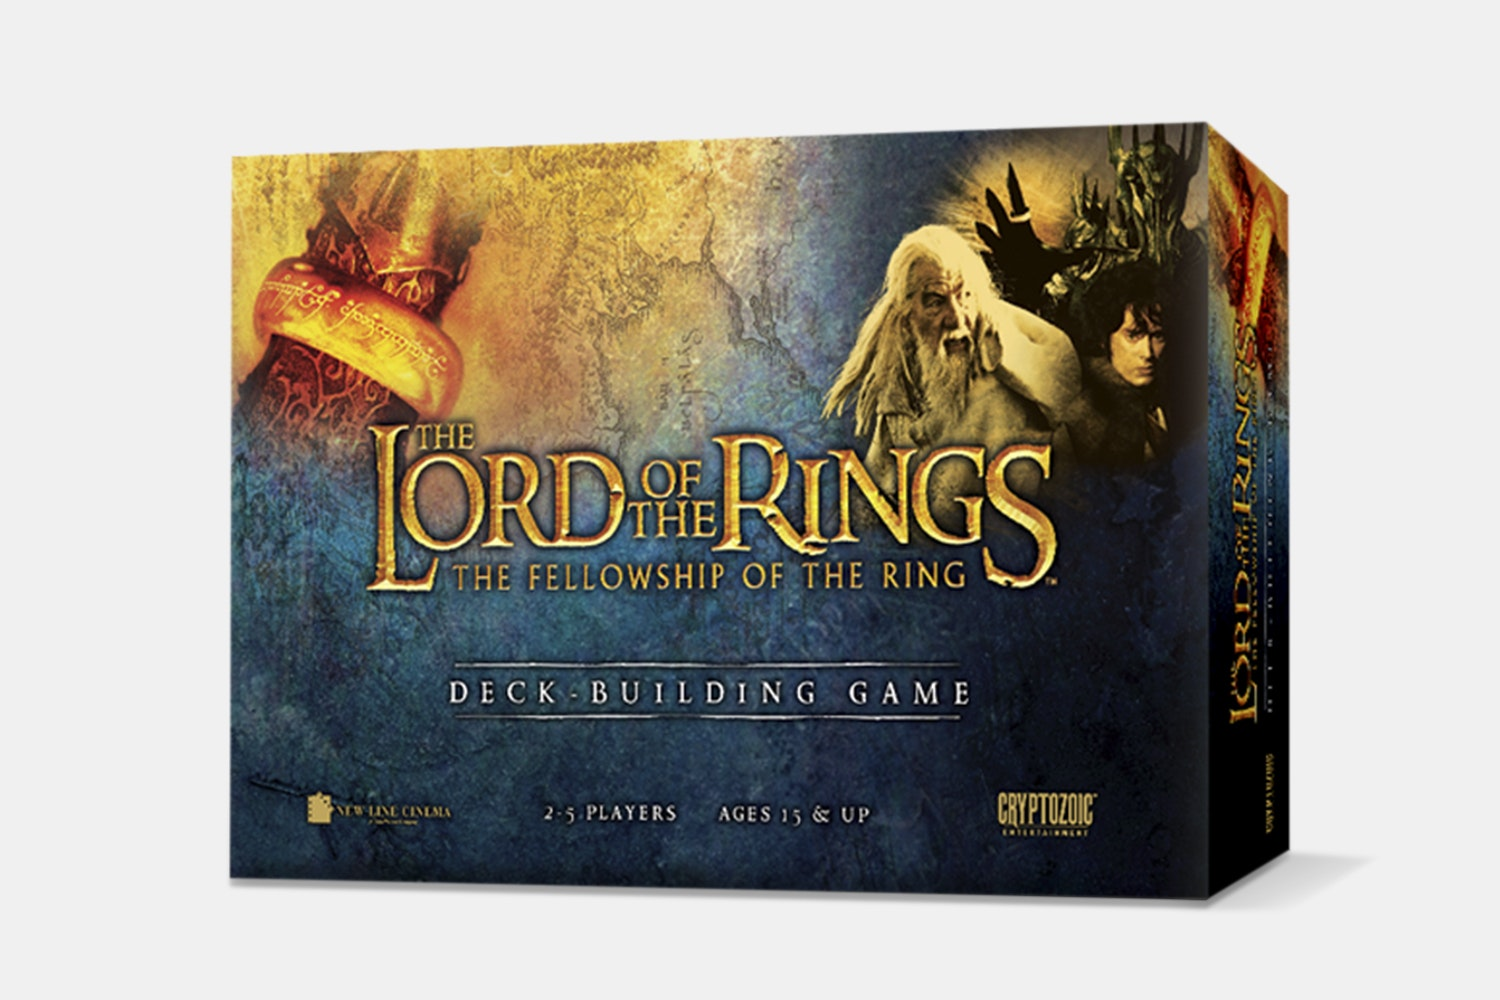 Lord of the Rings Deck-Building Game Bundle